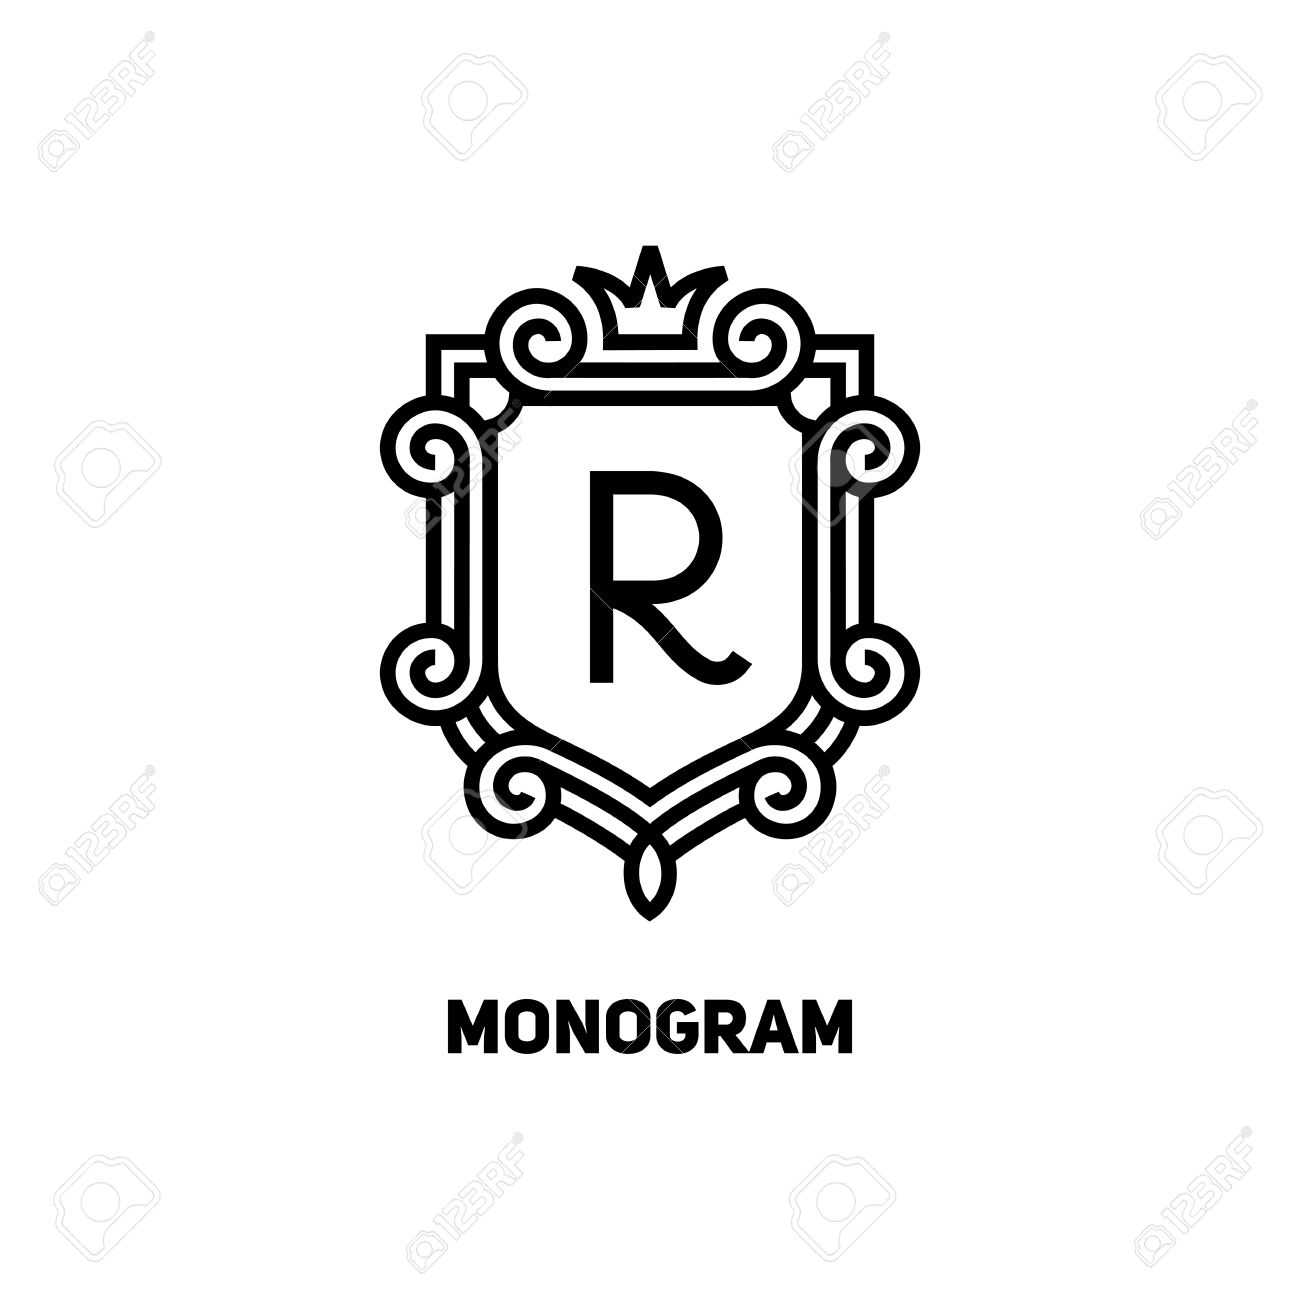 elegant monogram design template with letter r and crown vector